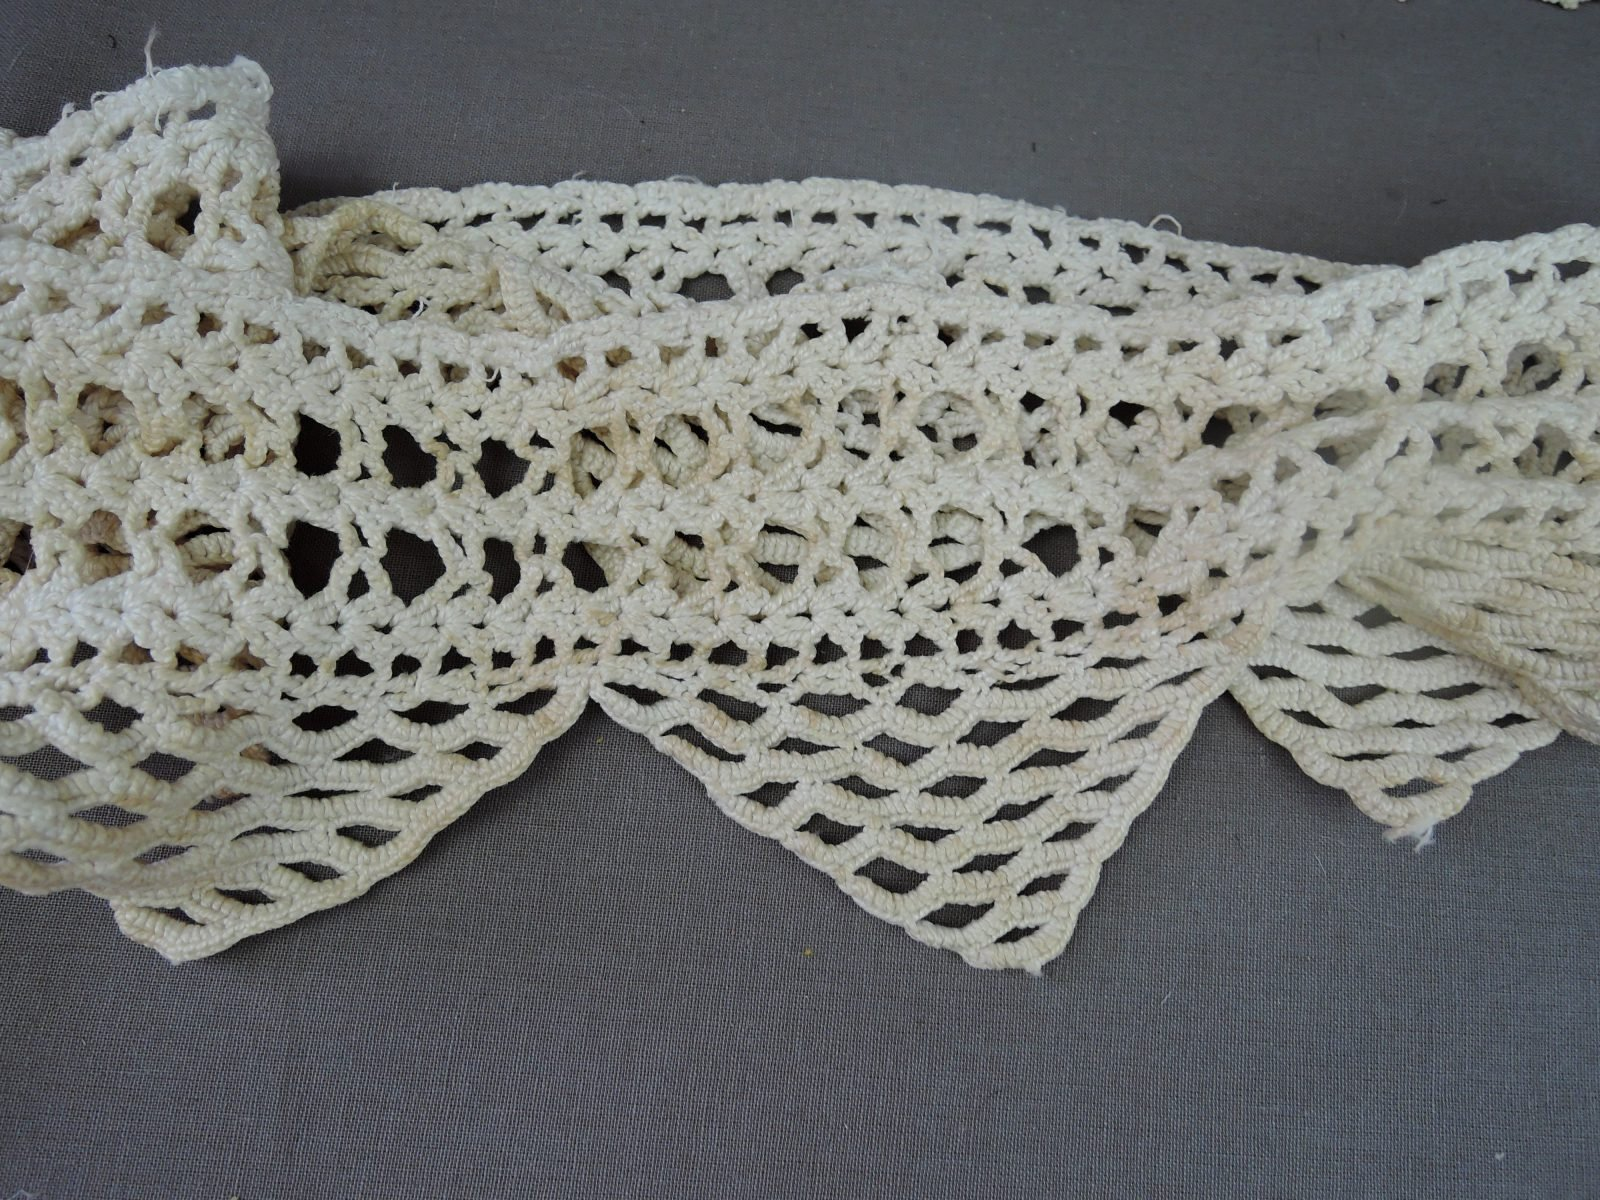 Antique Crochet Lace Trims, Victorian Edwardian Handmade Lace Trim, 2 pieces